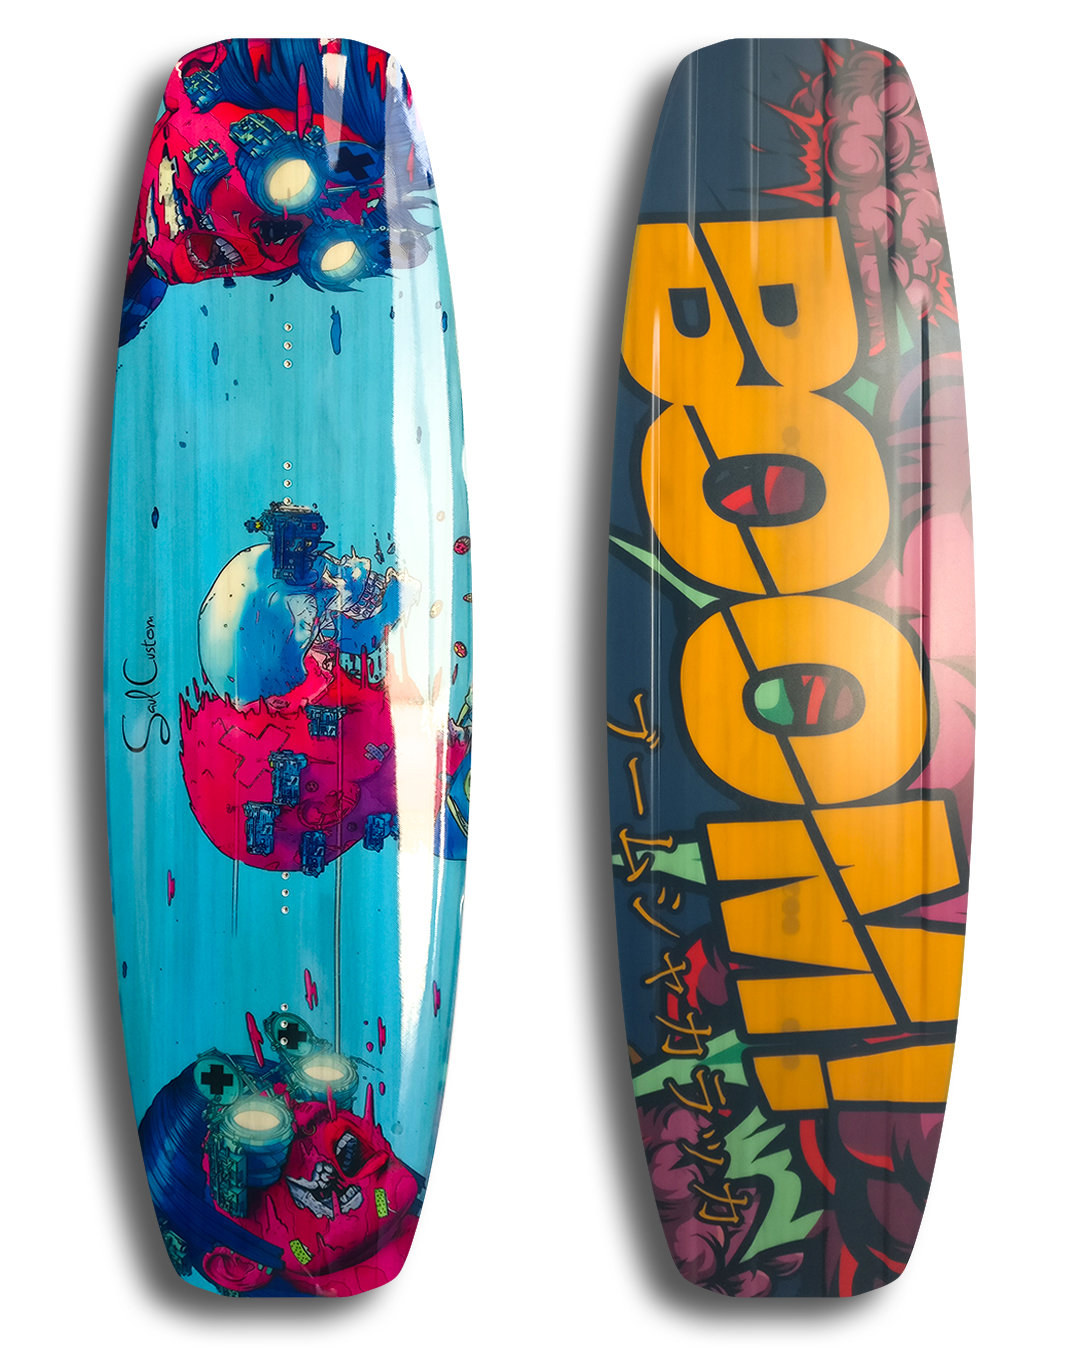 Rocket 2.0 PRO wakeboard - Vivid custom graphics - Wood core - Triaxial fiberglass construction